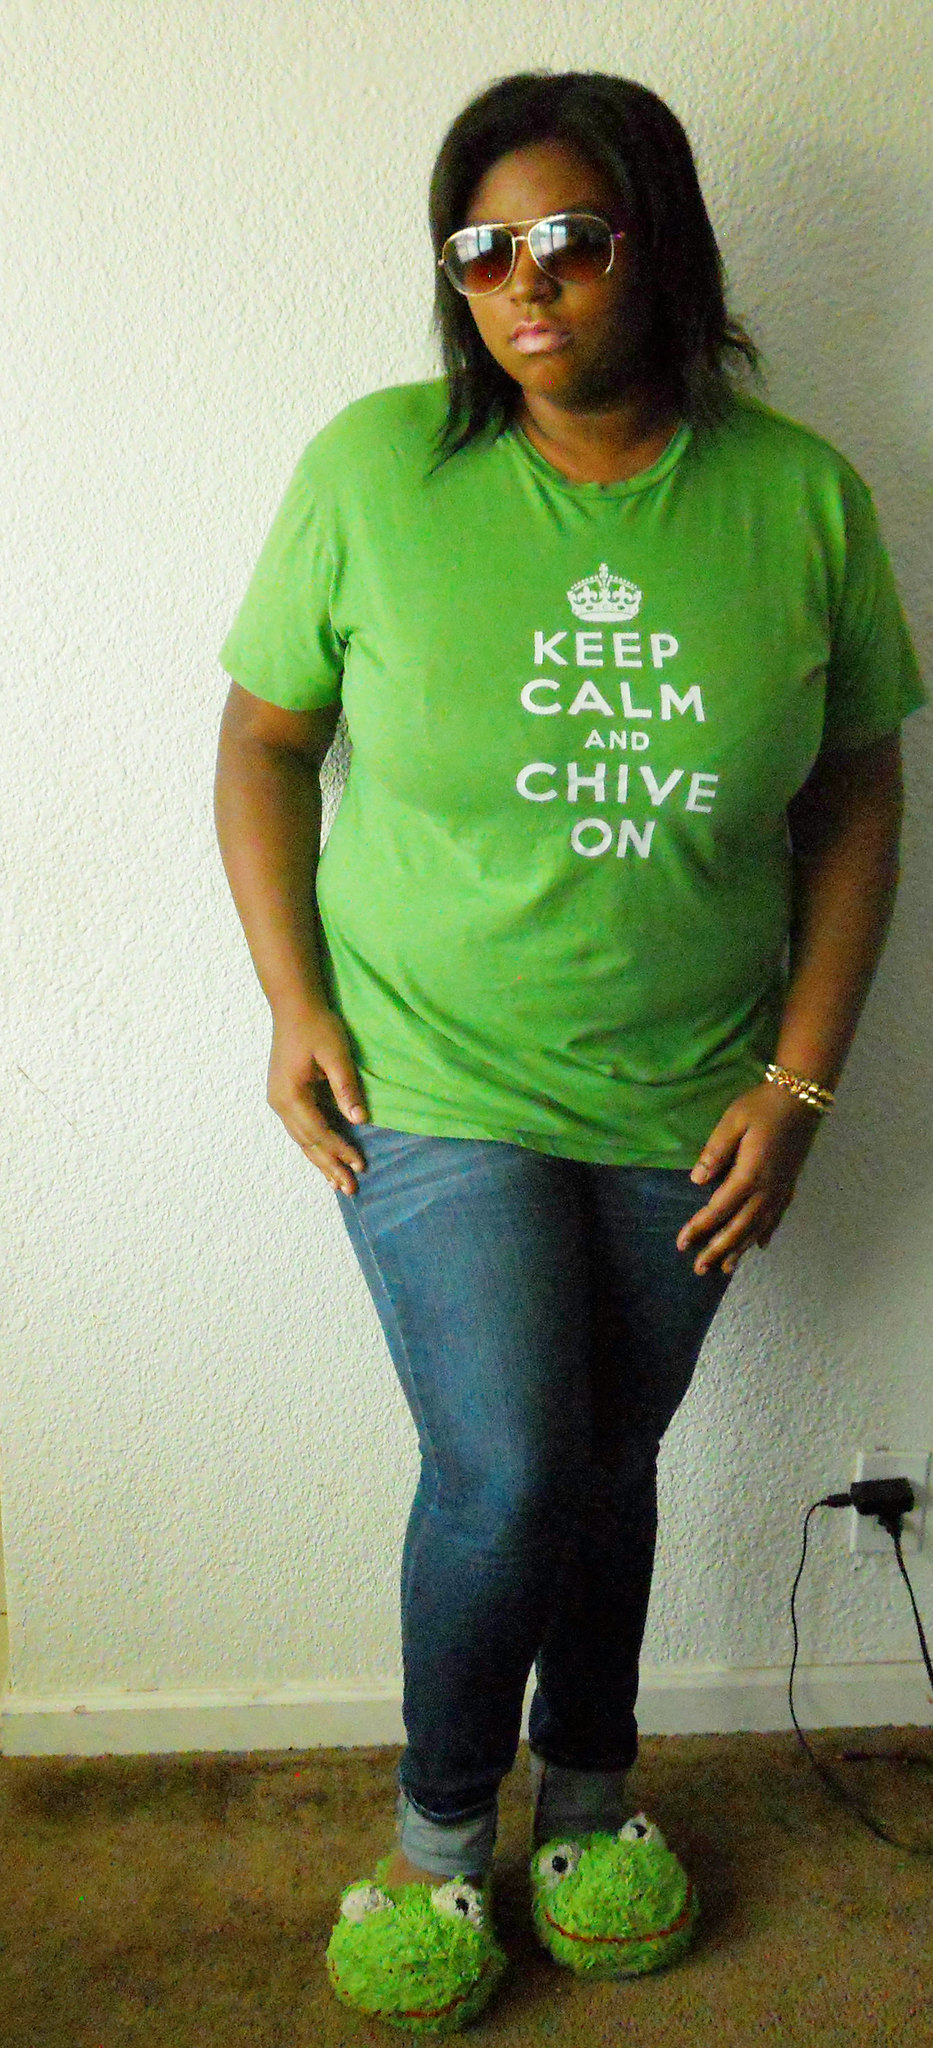 chive on 2